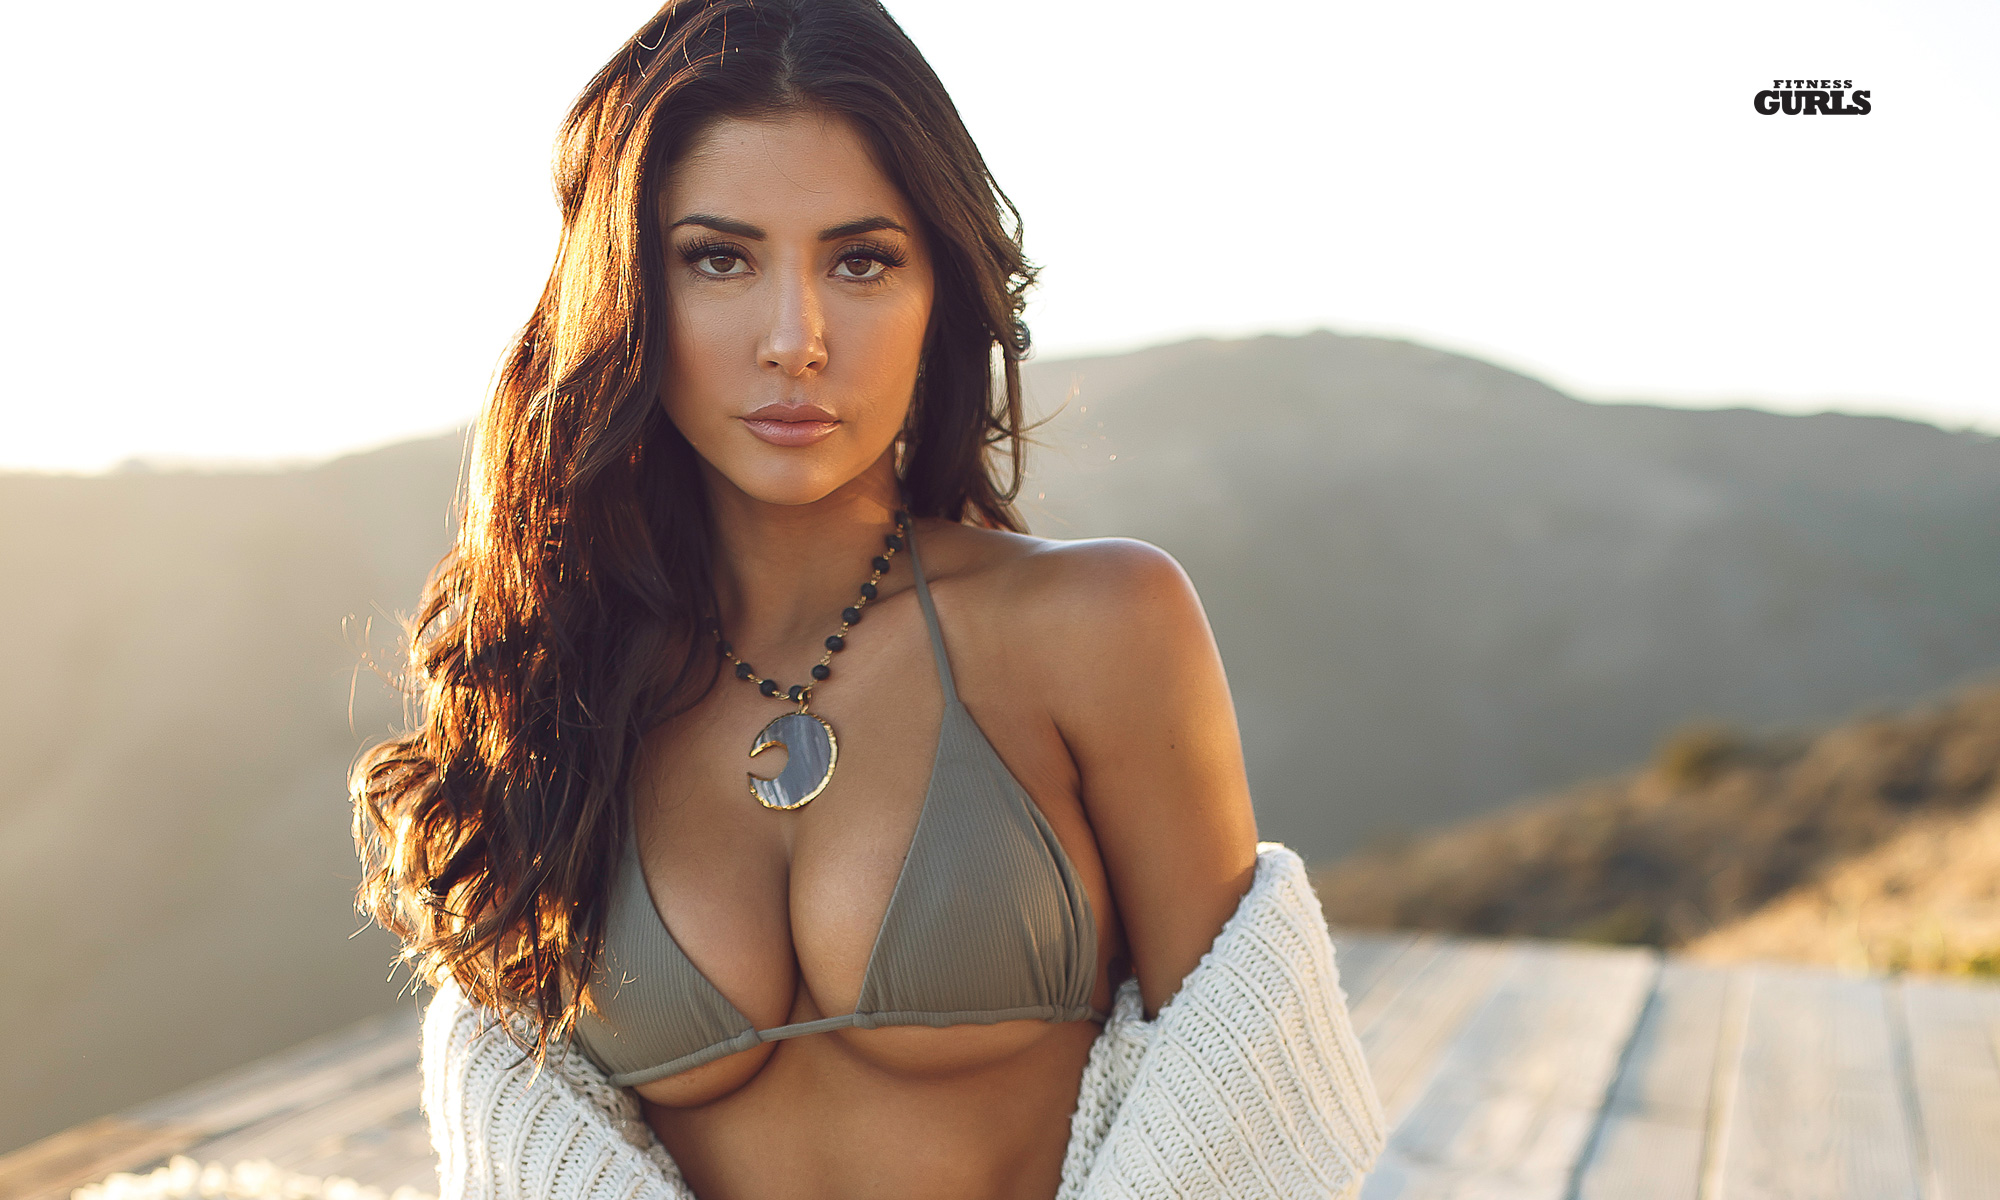 Arianny Celeste 2020 Calendar Arianny Celeste 2020 Calendar Photoshoot Video in Mexico | MMA Fight